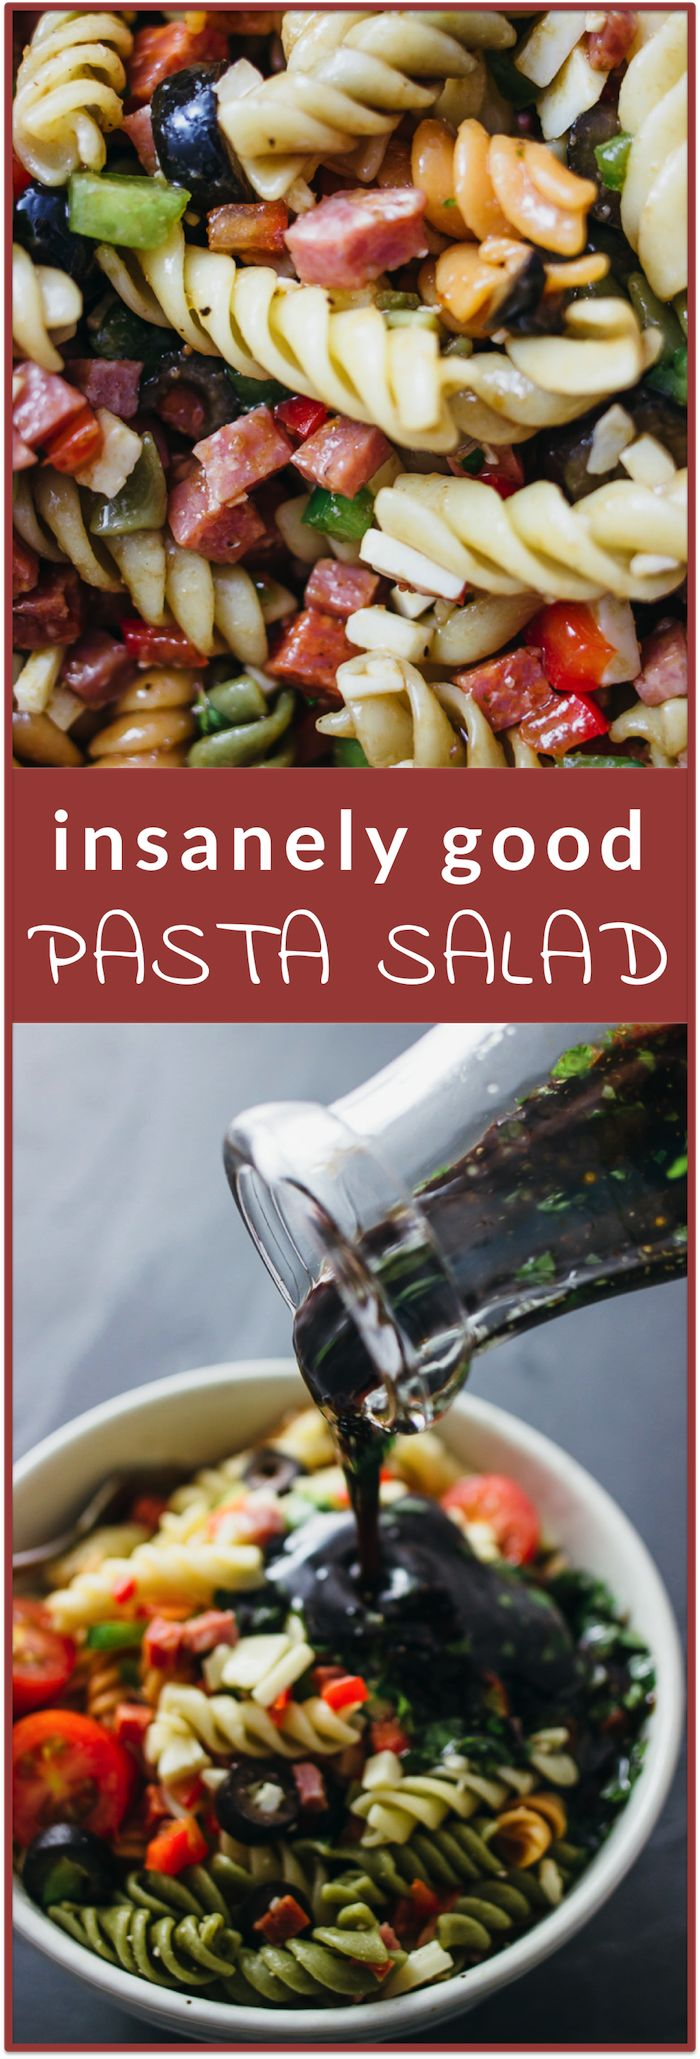 Insanely good pasta salad - This is a ridiculously good pasta salad that anyone can make. It's simple and easy with only 3 steps and it's a one-pot type of recipe! It's a cold hearty pasta that's full of healthy vegetables with fresh bell peppers, sliced black olives, and grape tomatoes. Also, I LOVE the Italian dressing that's so simple yet so tasty -- it's got olive oil and balsamic vinegar (yum!) plus some fresh herbs.   savorytooth.com